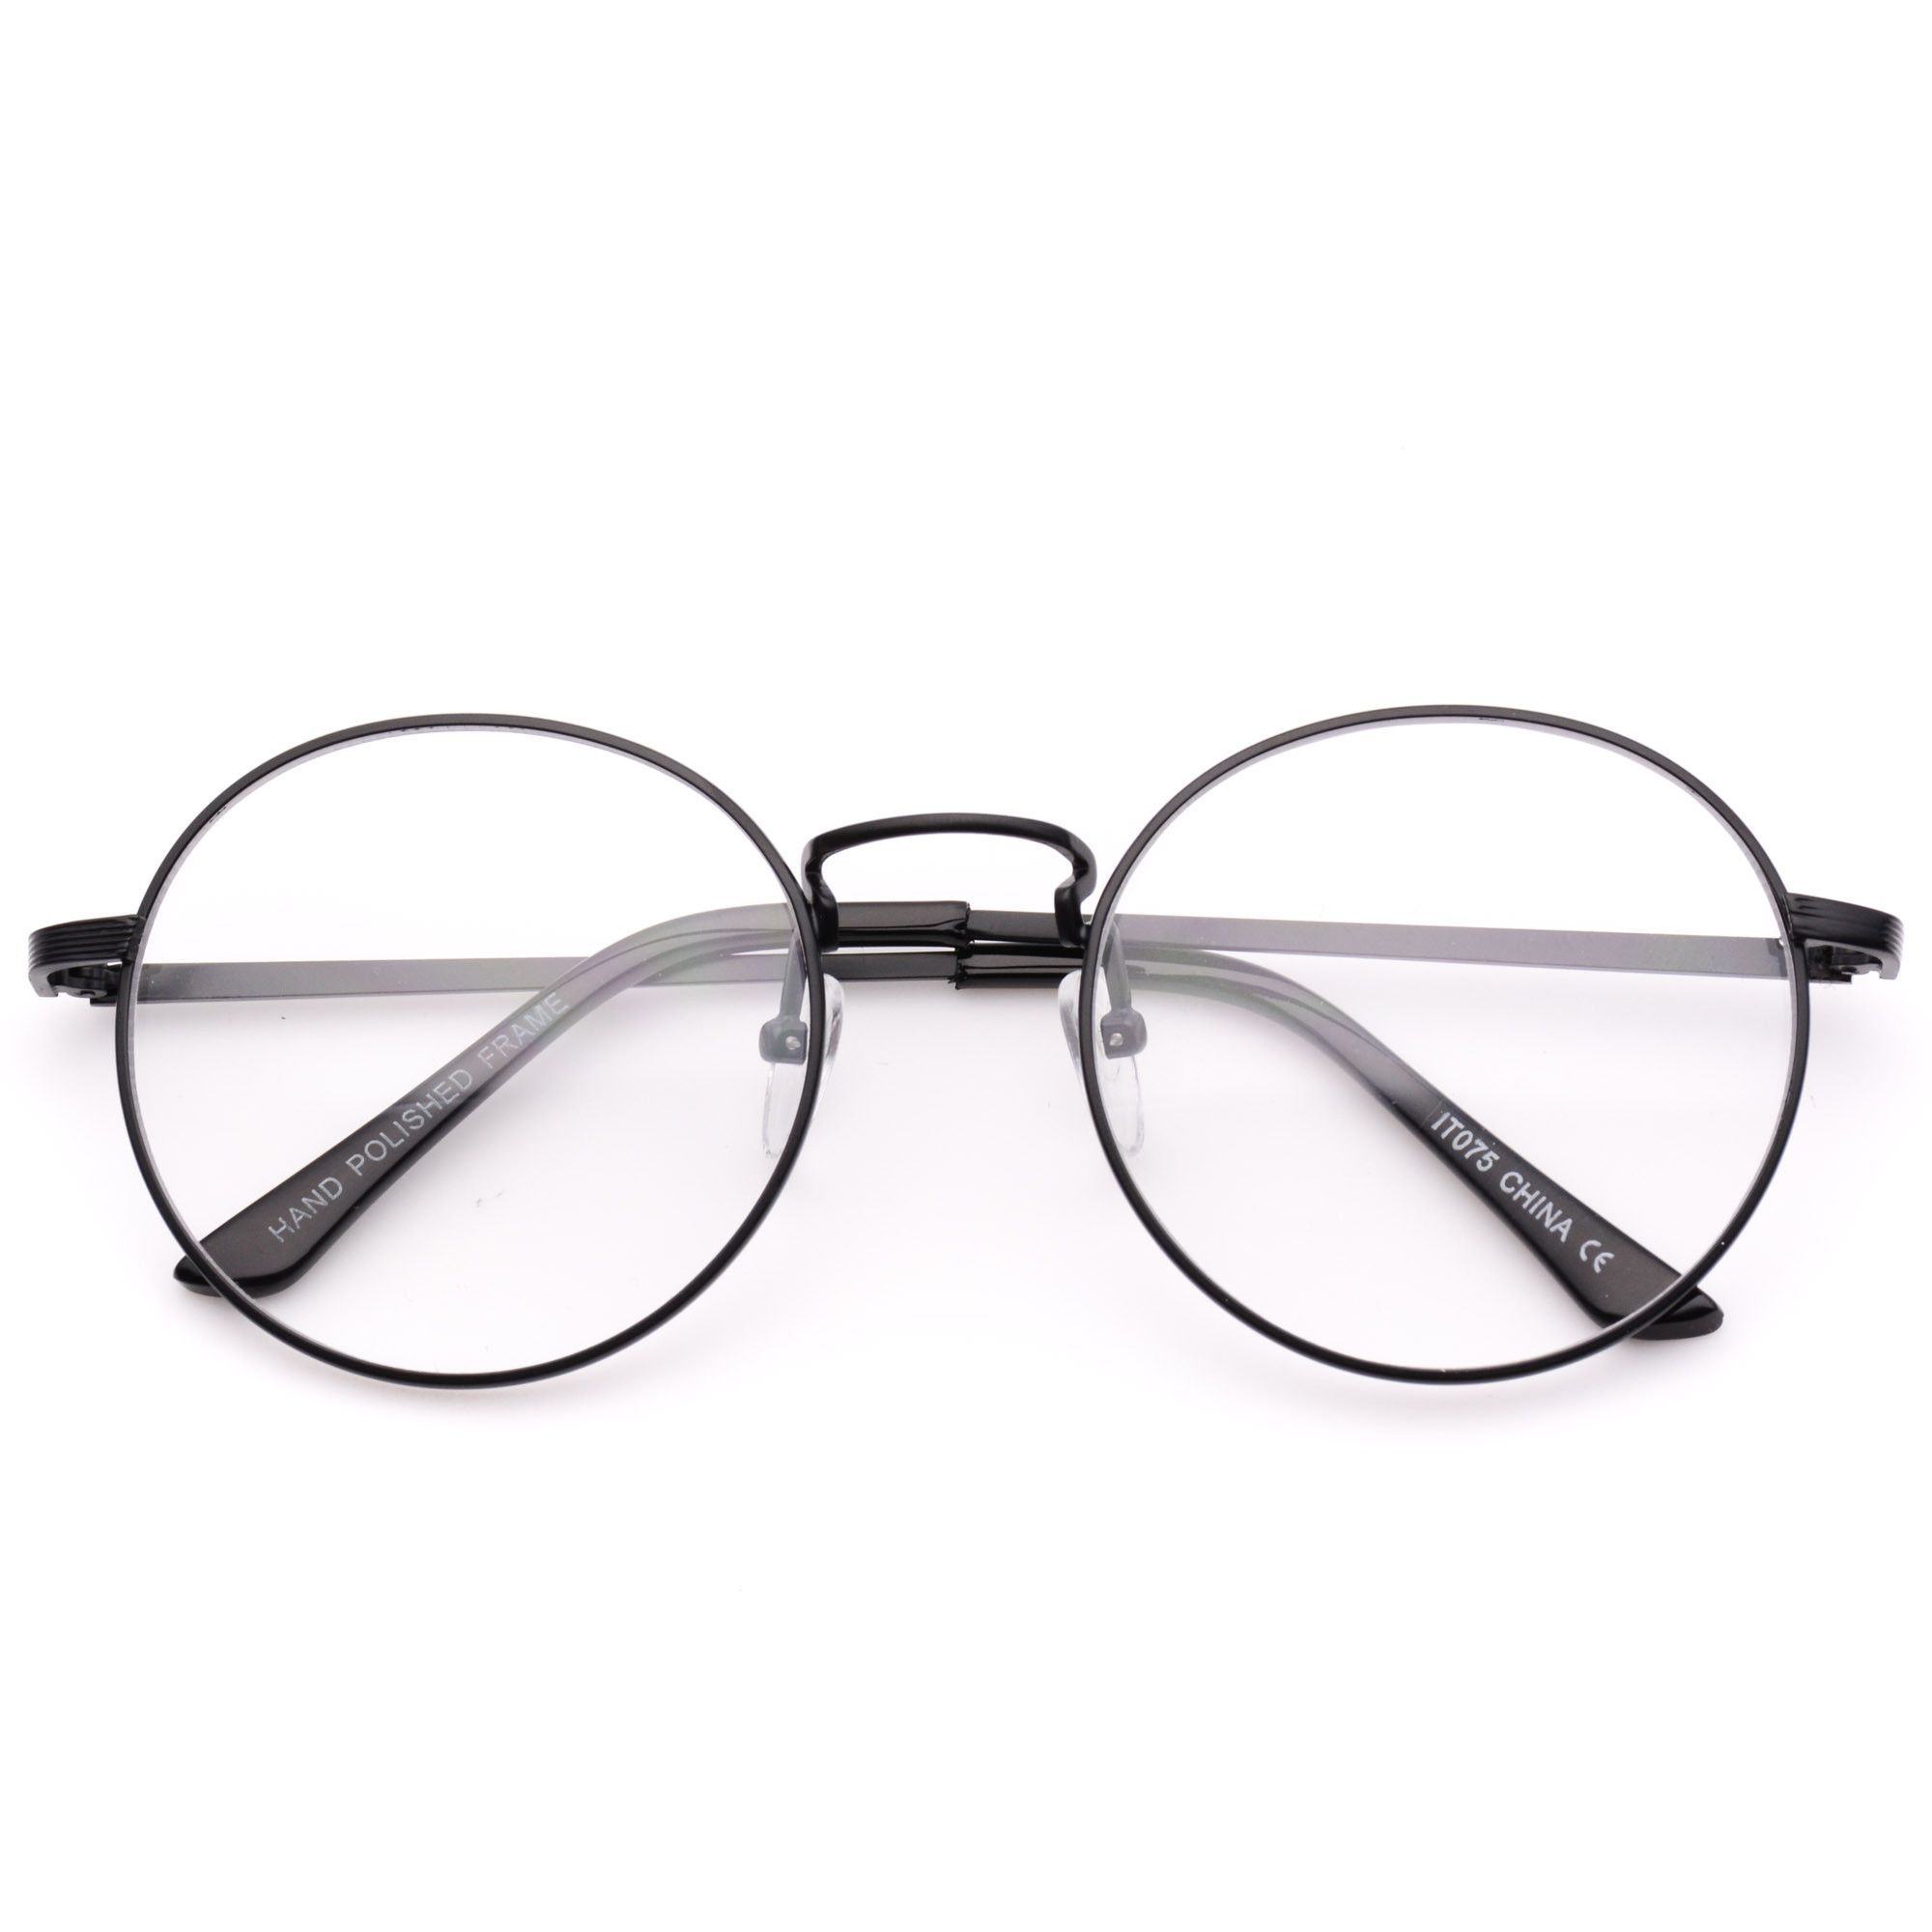 5490188172d478 Blaine Round Metal Clear Lens Glasses   Buy in 2019   Glasses ...